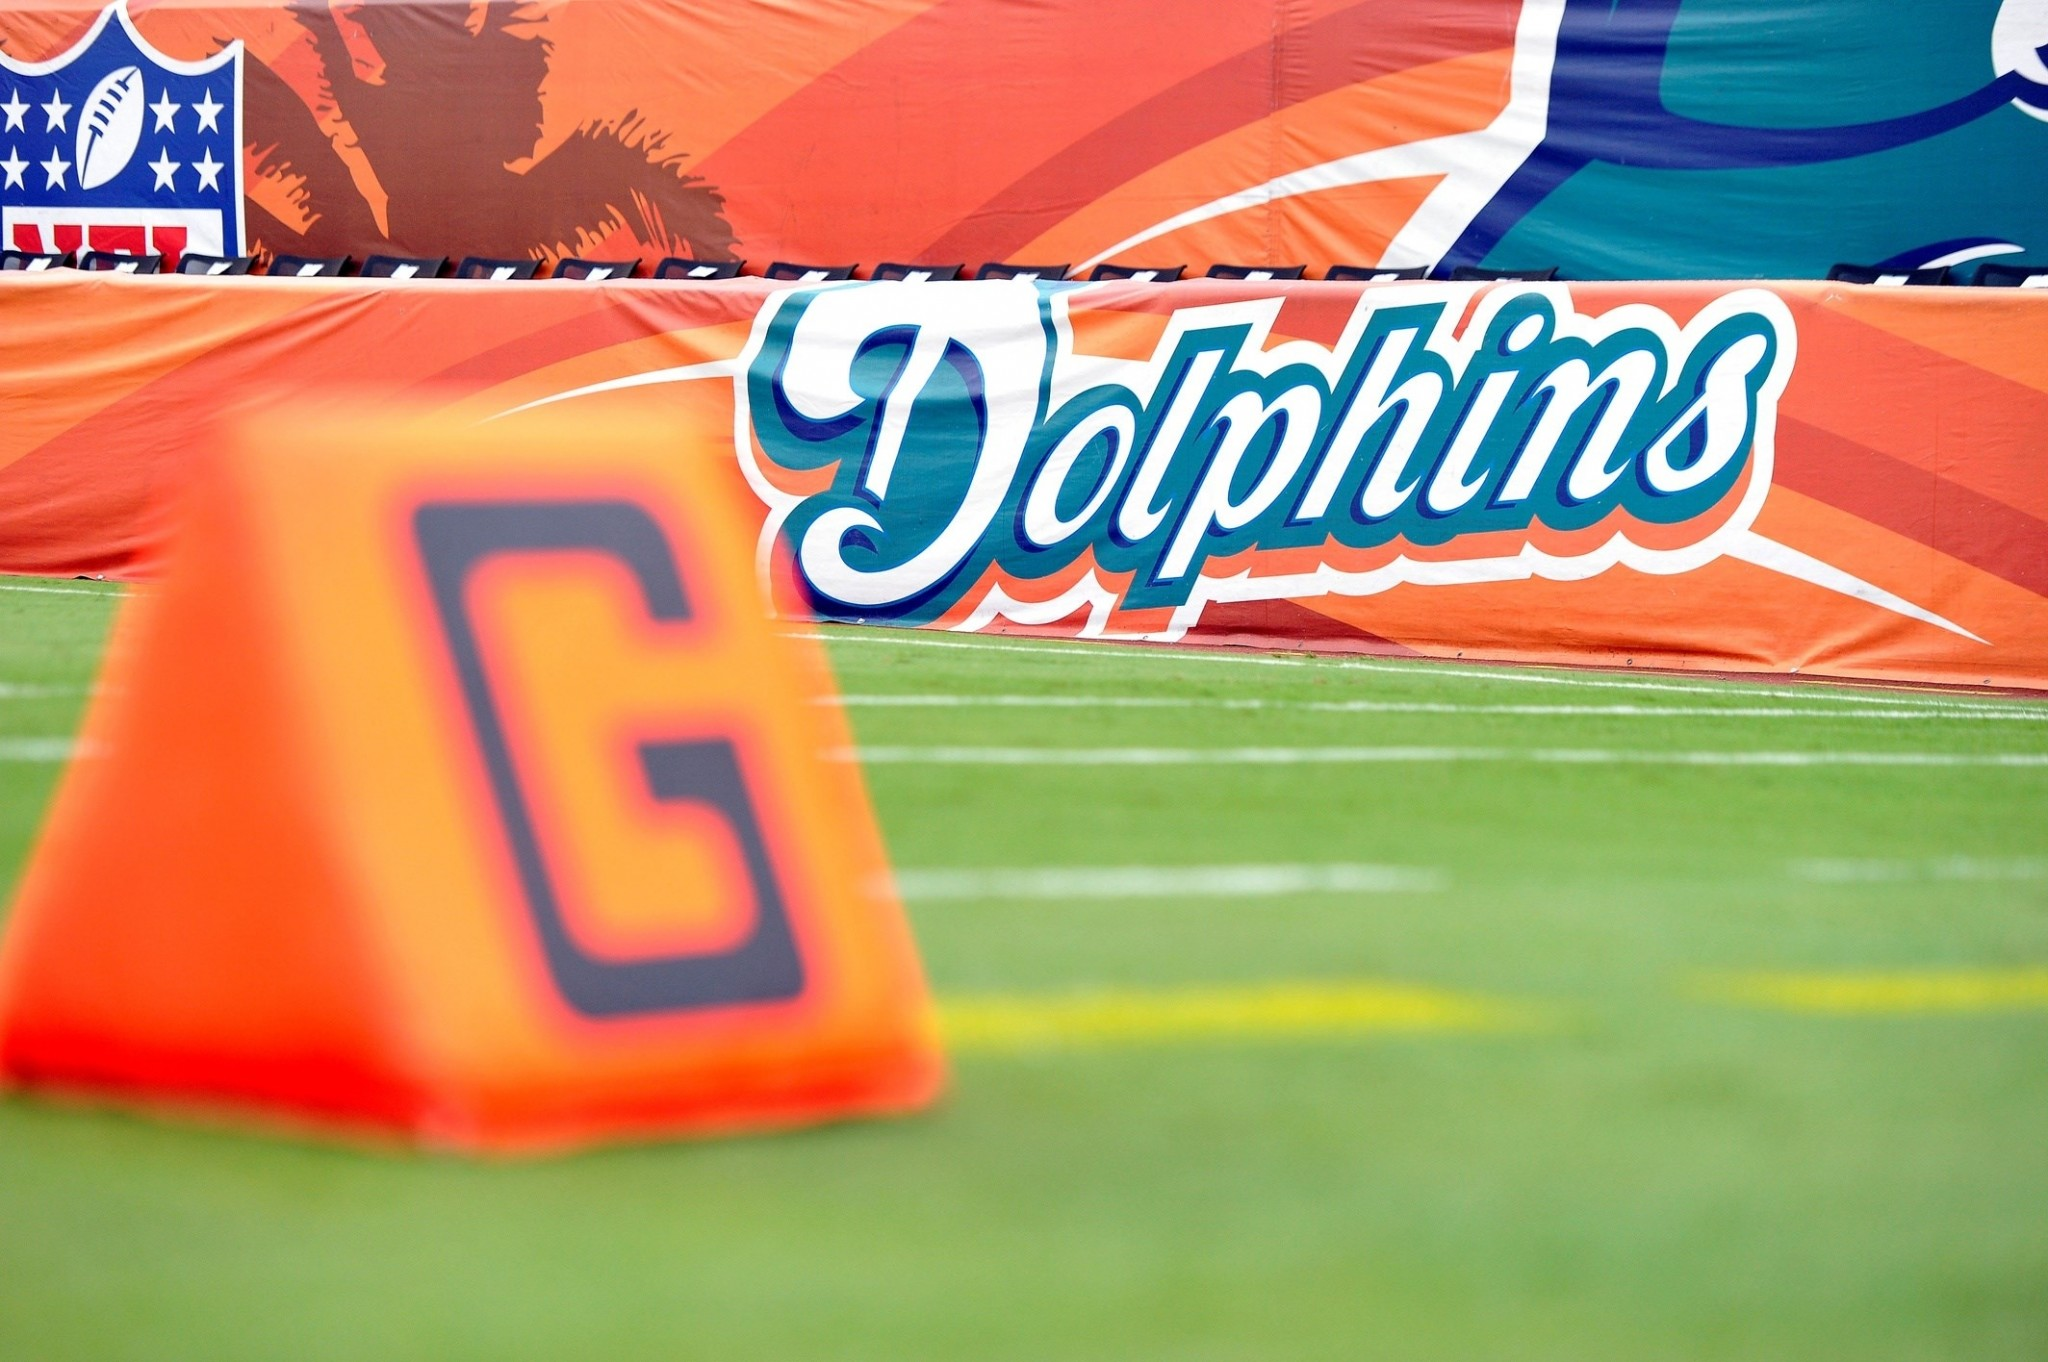 2048x1362 miami dolphins wallpaper desktop backgrounds free